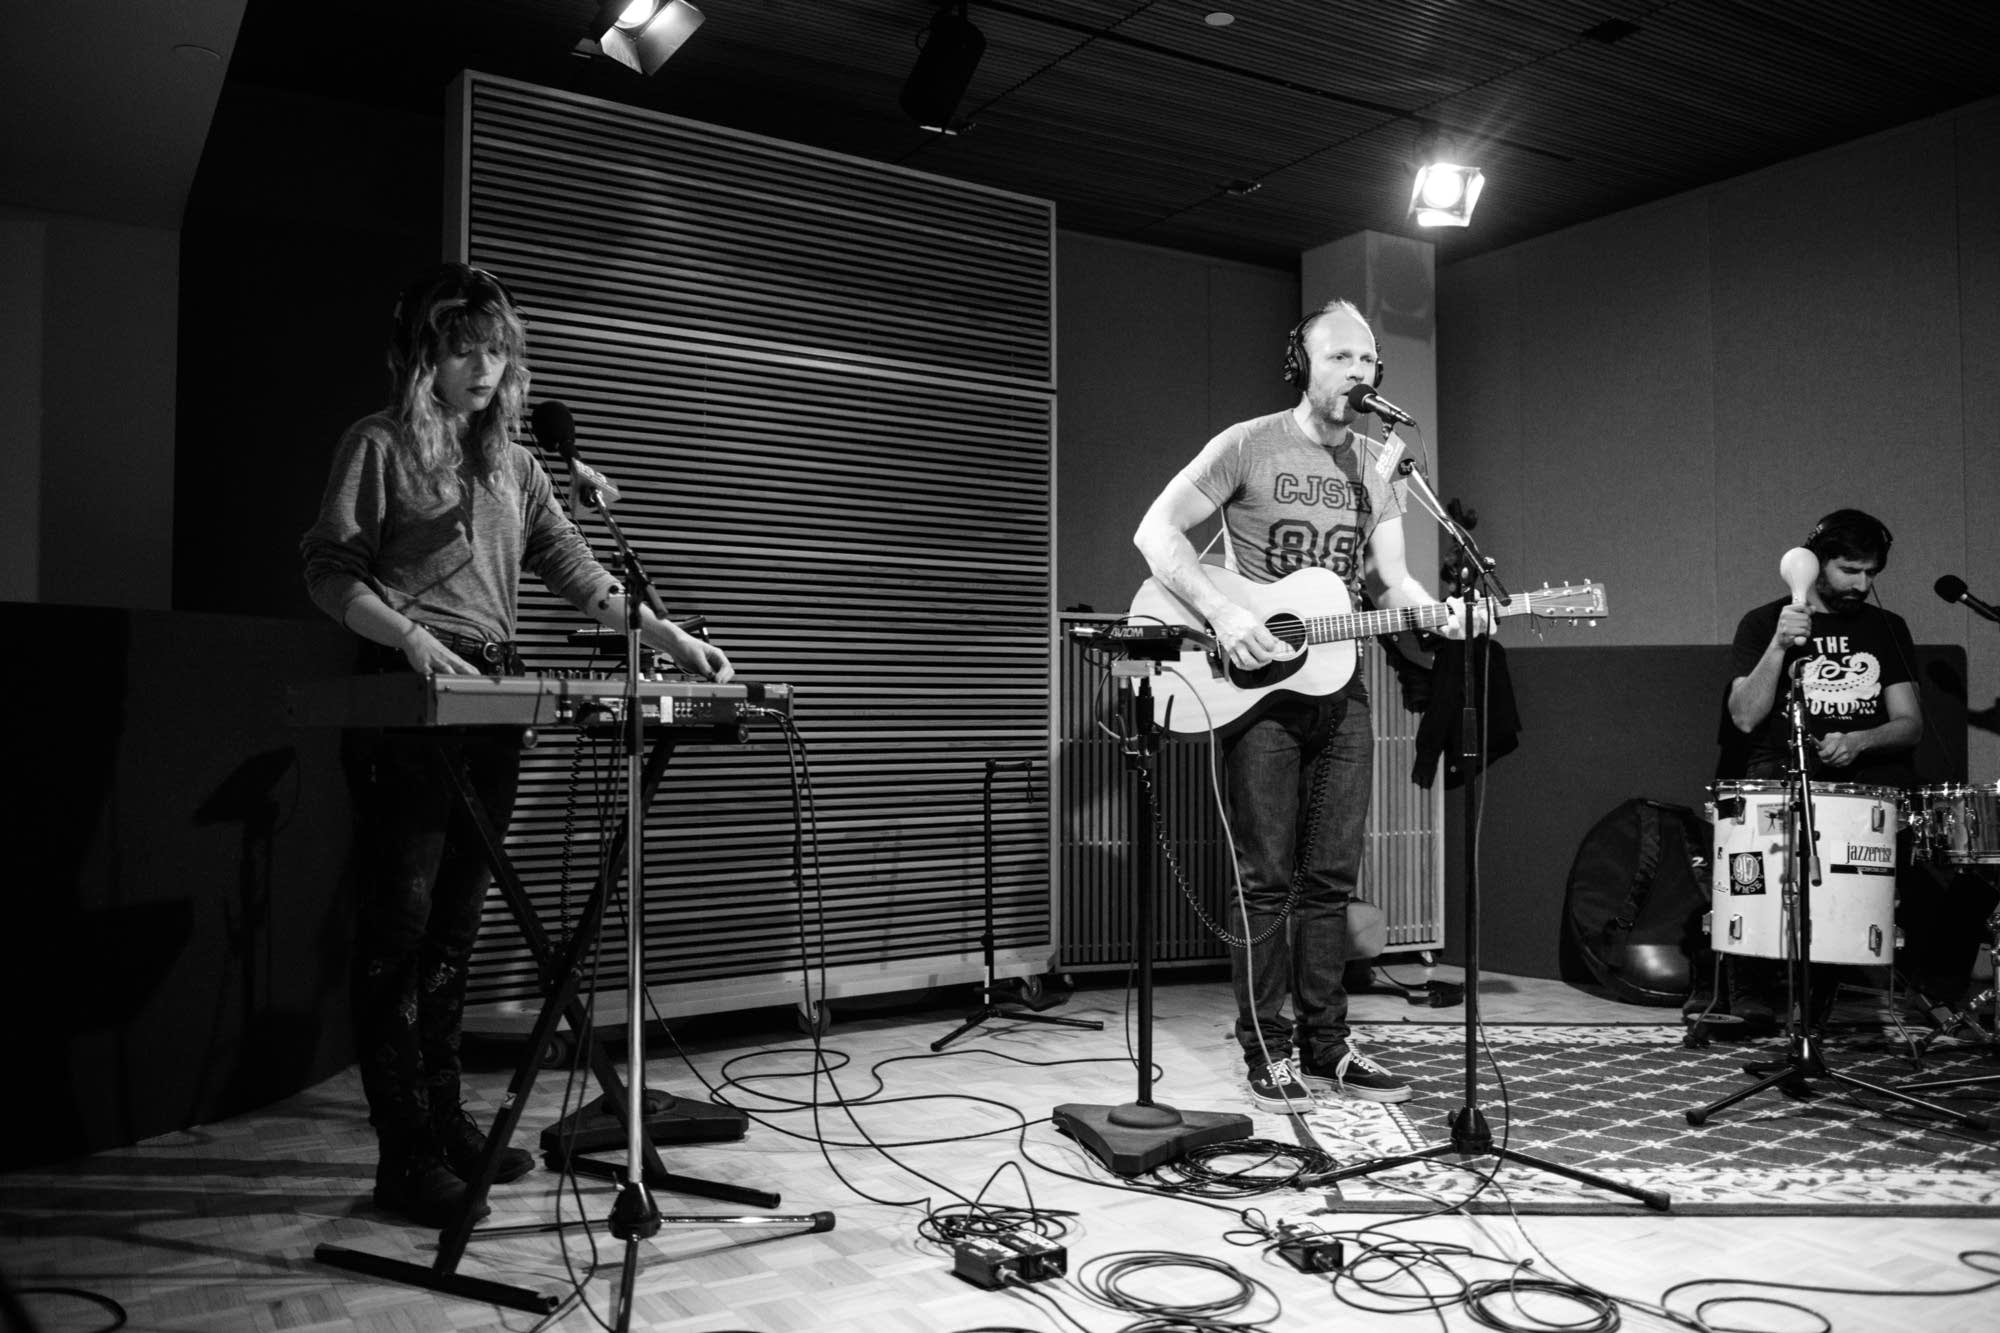 The Rural Alberta Advantage perform in The Current studio